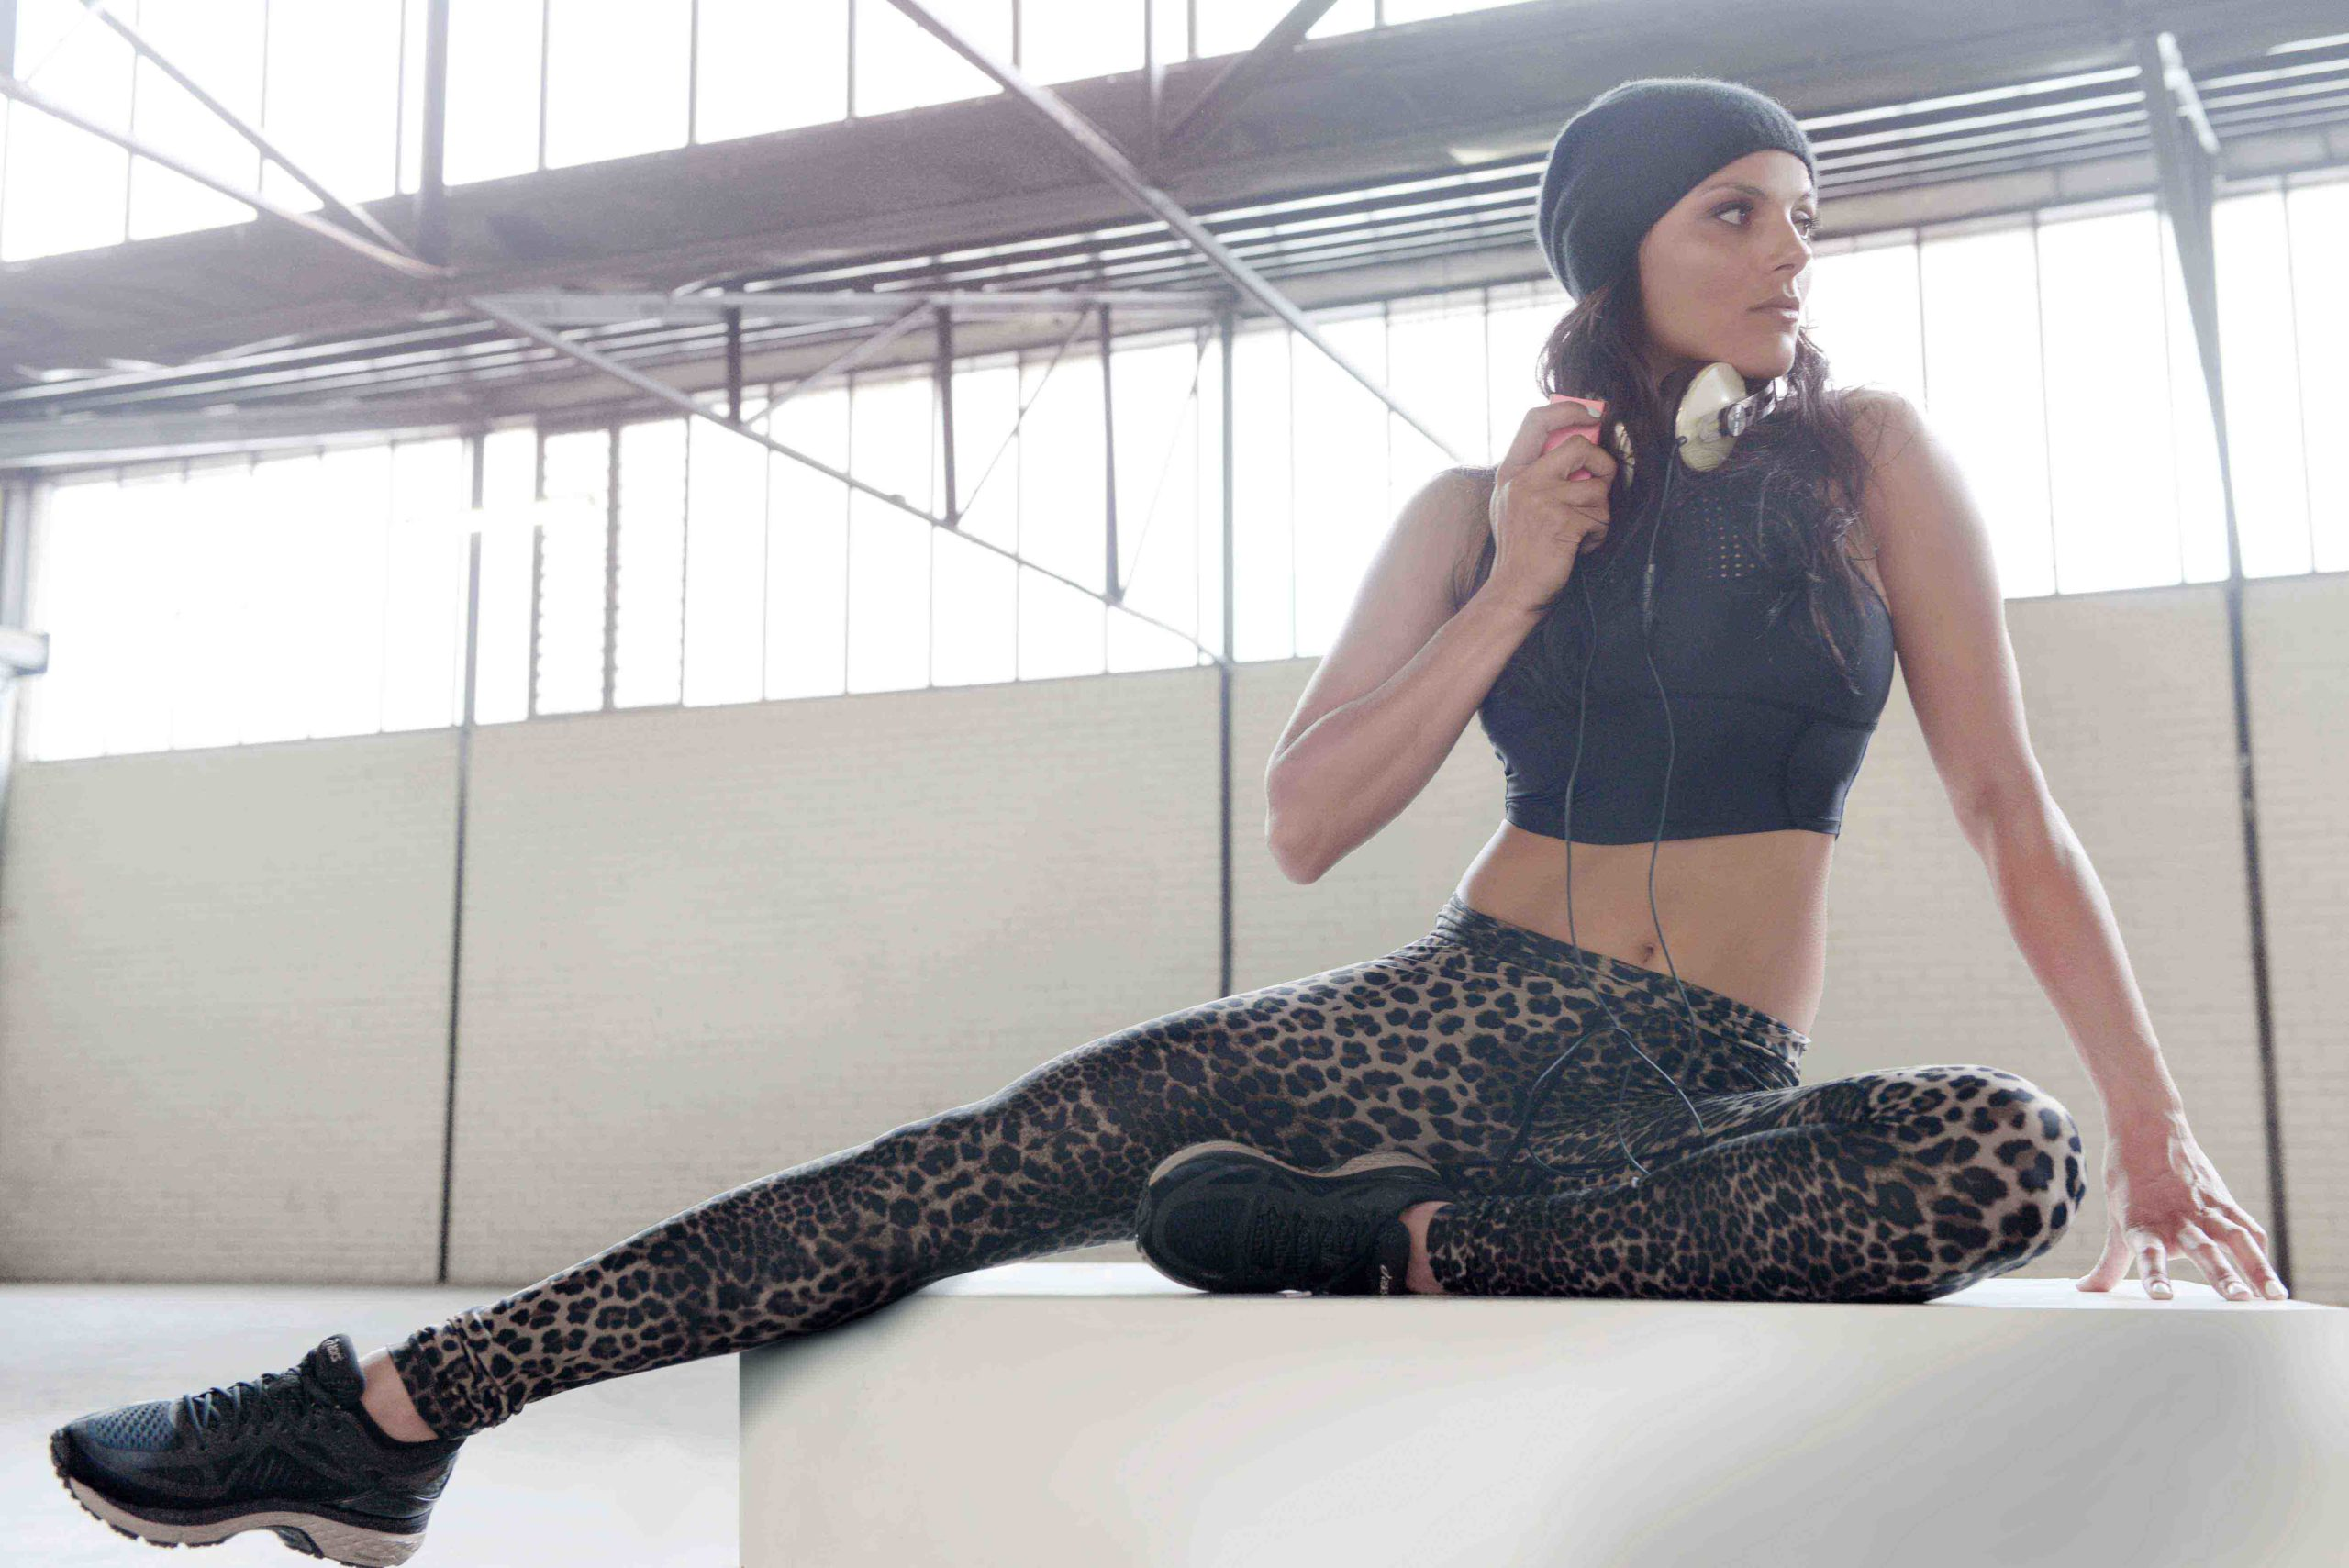 Kerri Sydney's leading fitness model being photographed in old warehouse